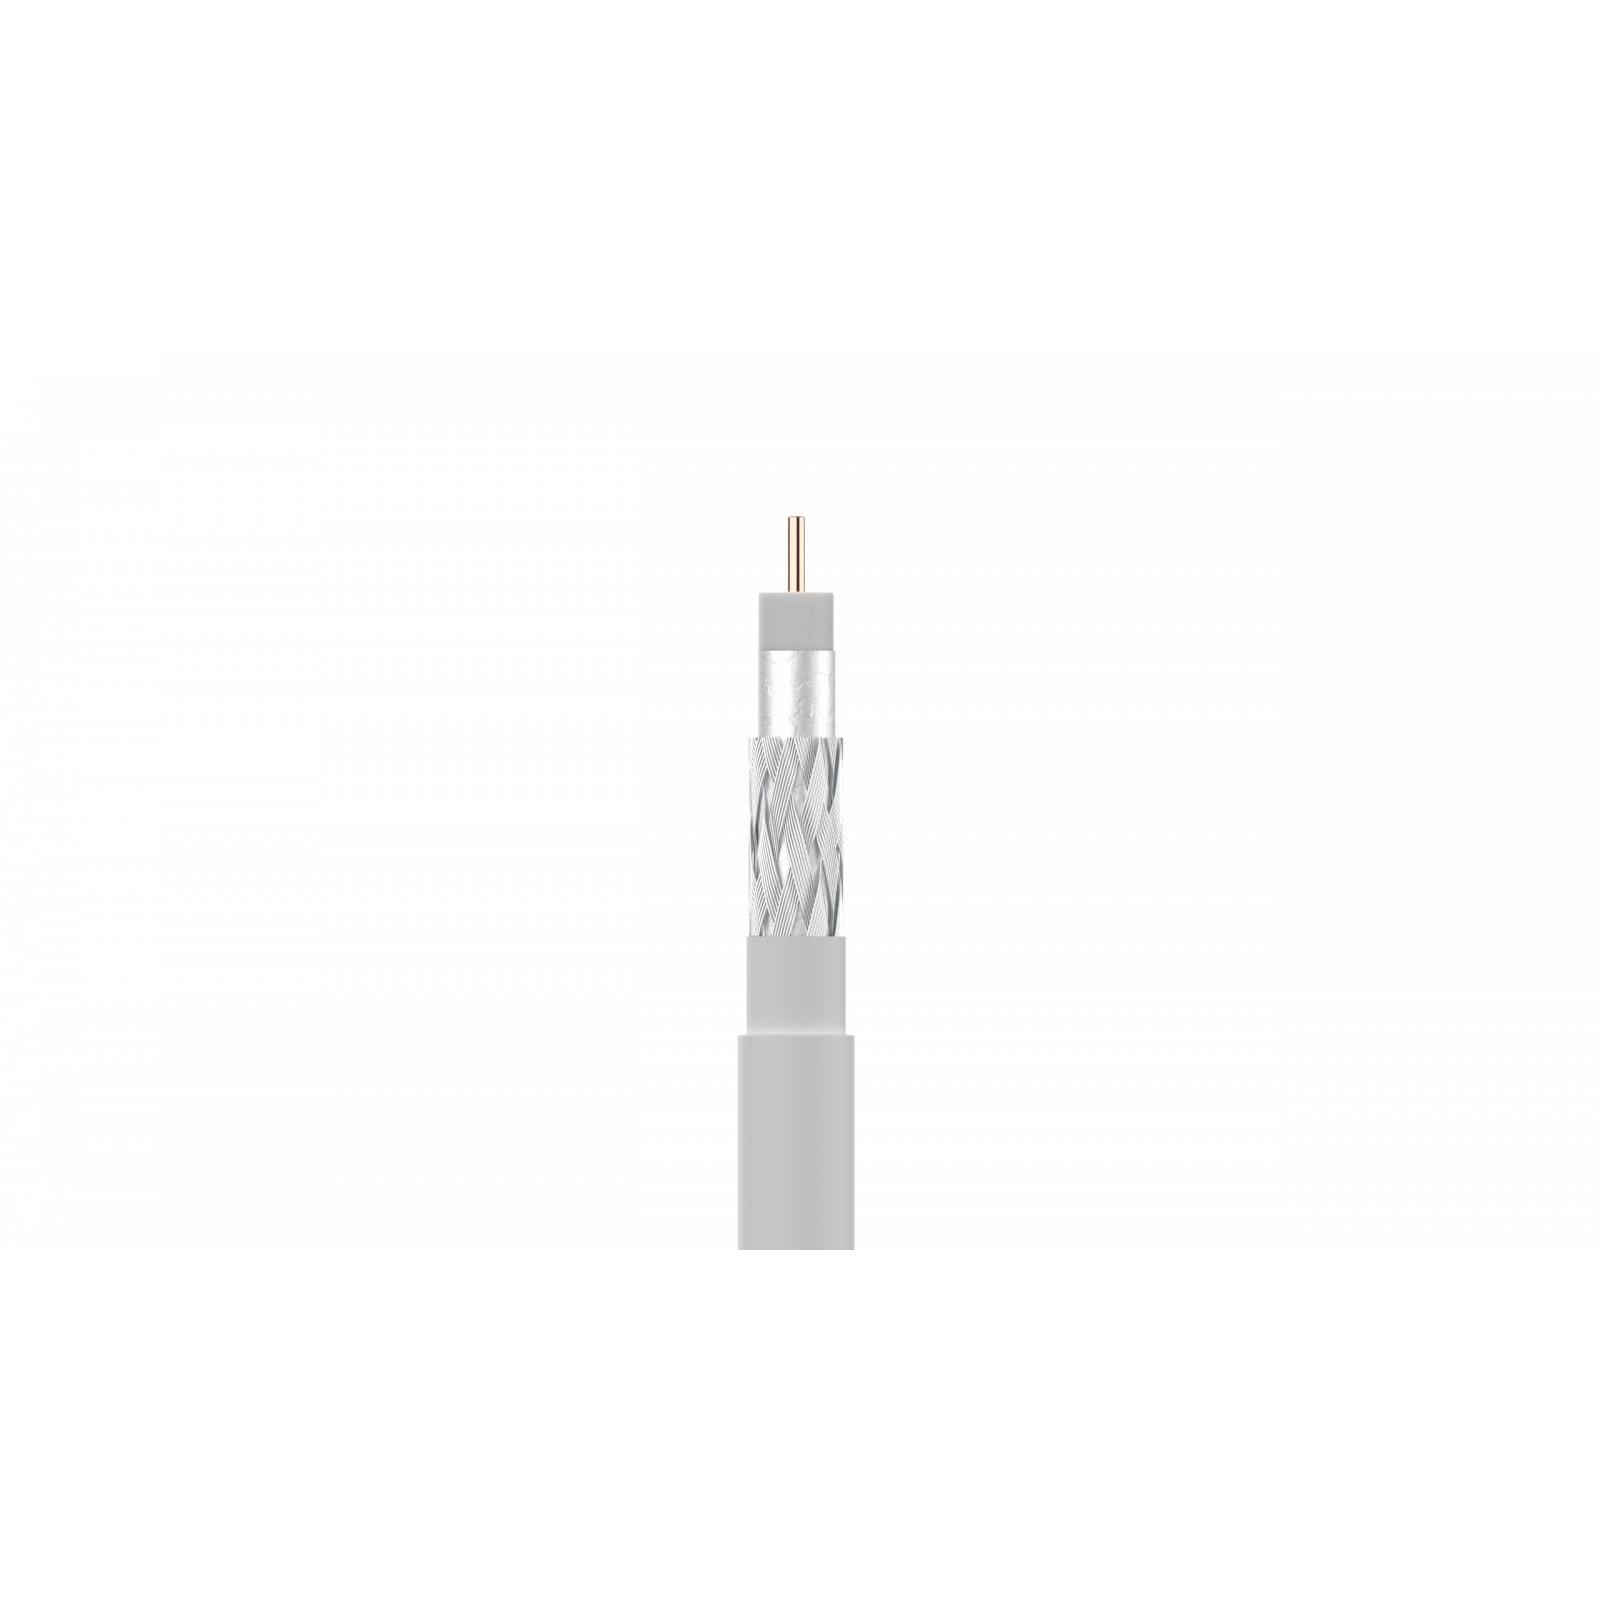 Cable Coaxial Antenna In Coil 250 M TV Sk6fplus 19Vat C.A White 414802 Televes